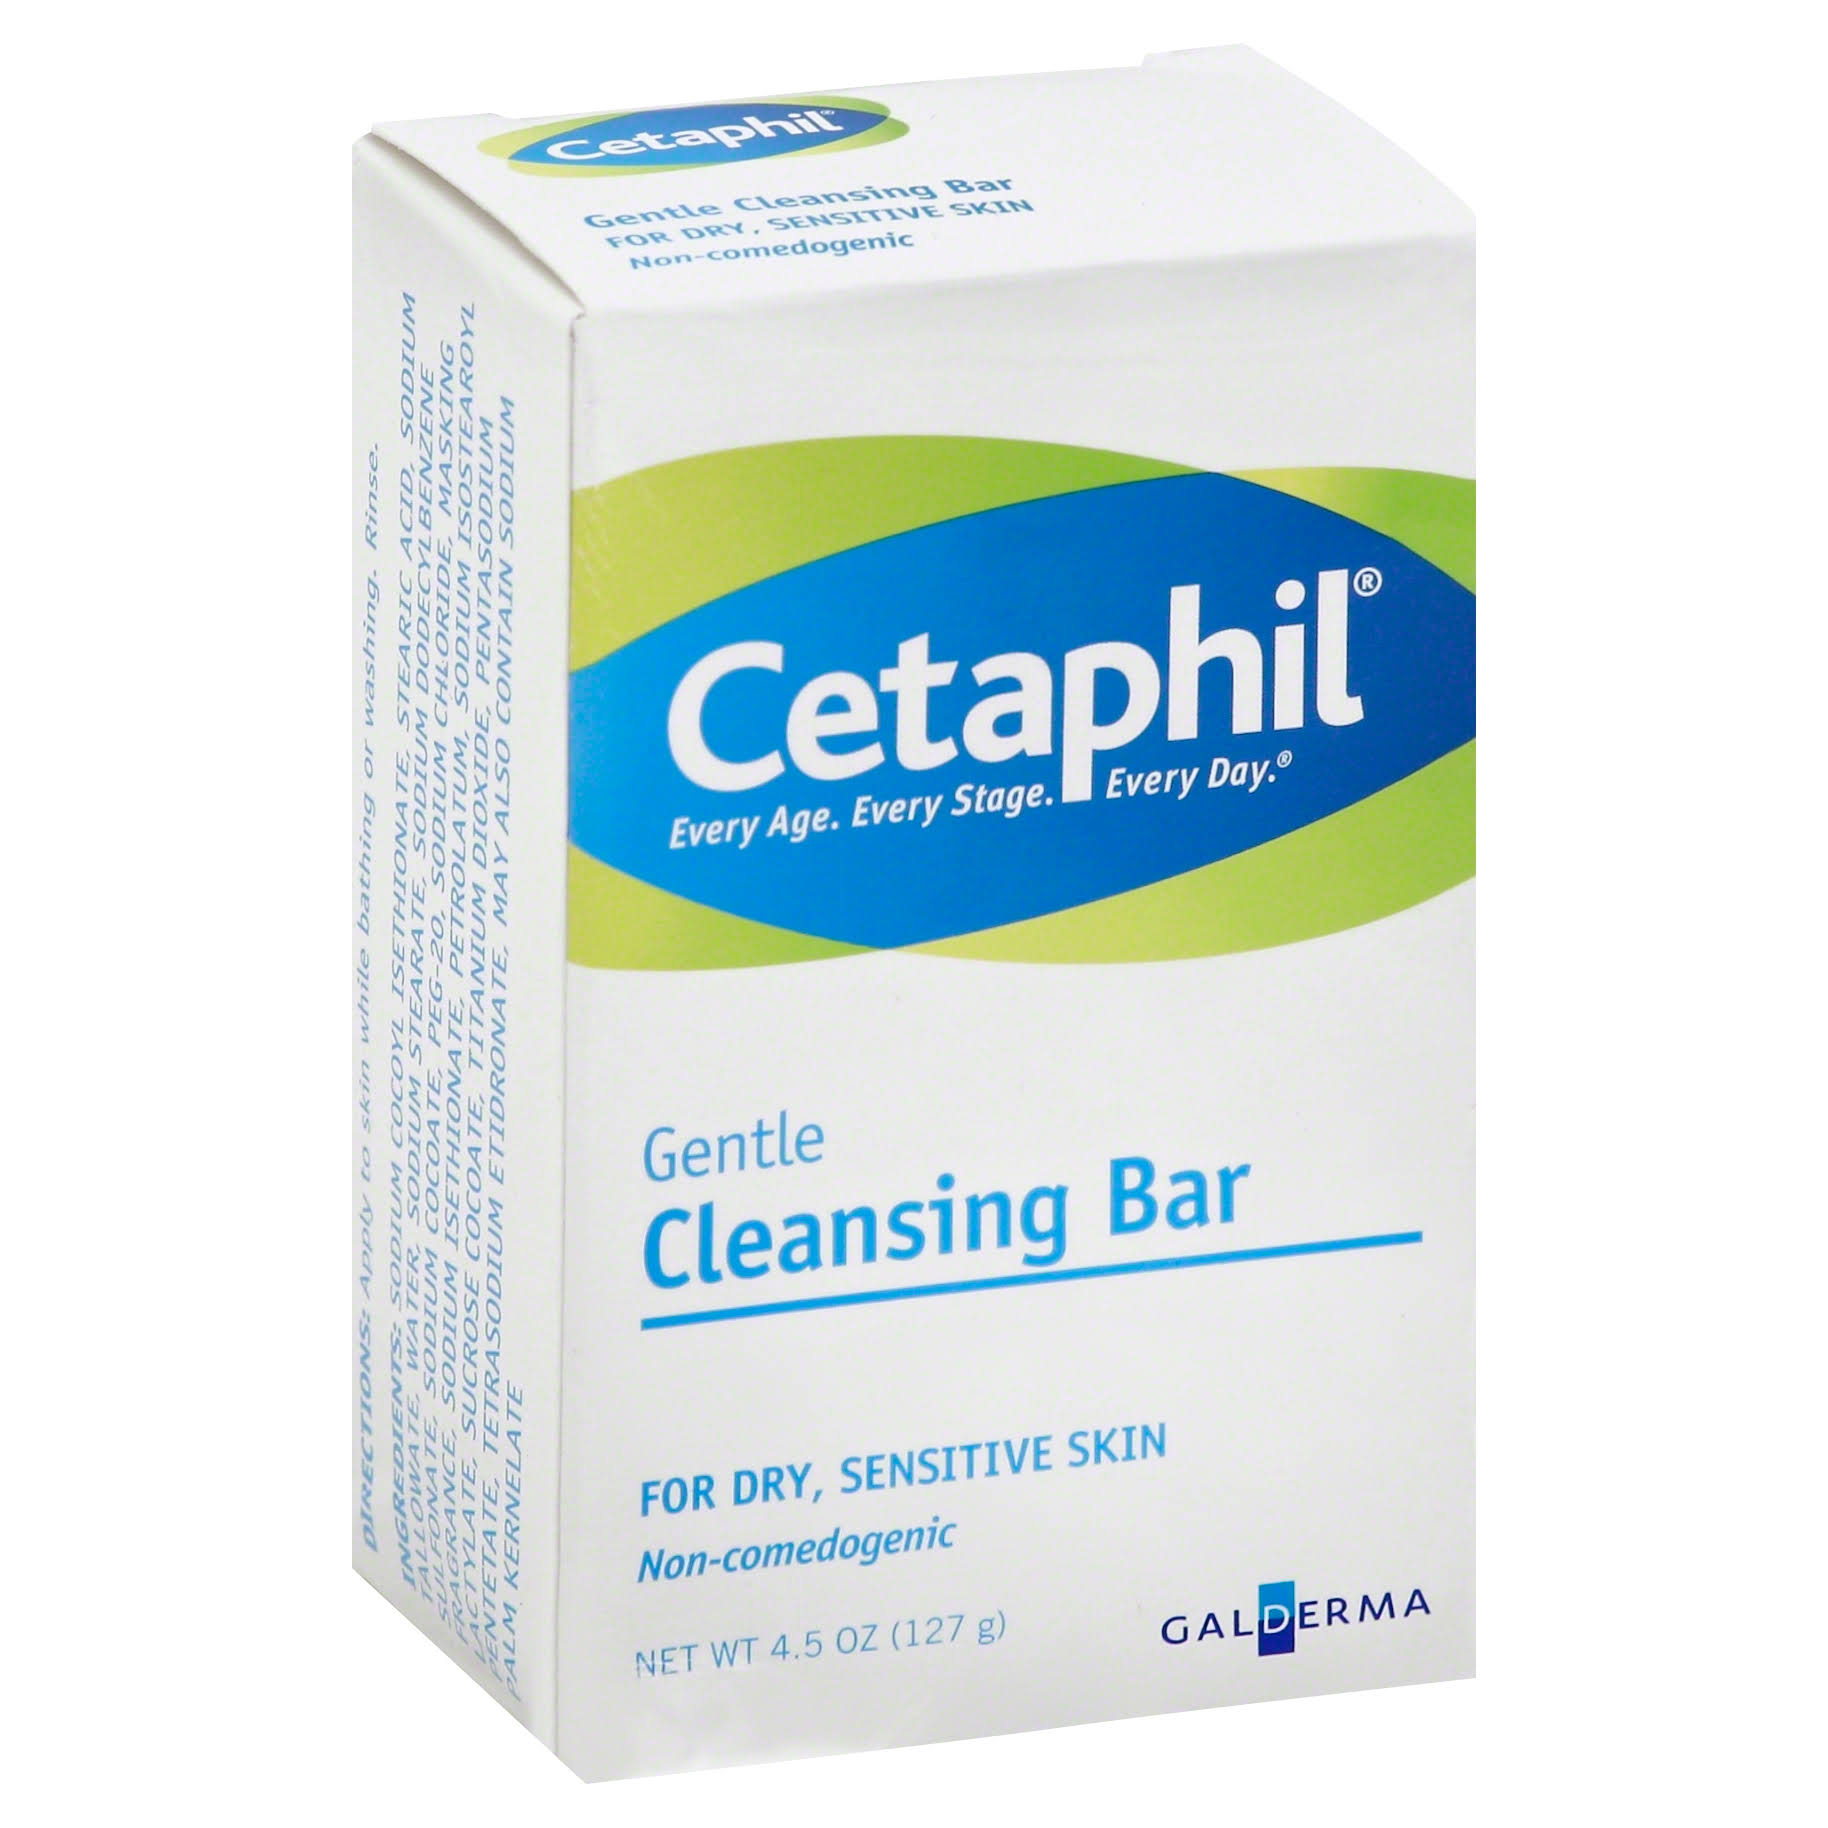 Cetaphil Gentle Cleansing Bar Soap - 4.5oz